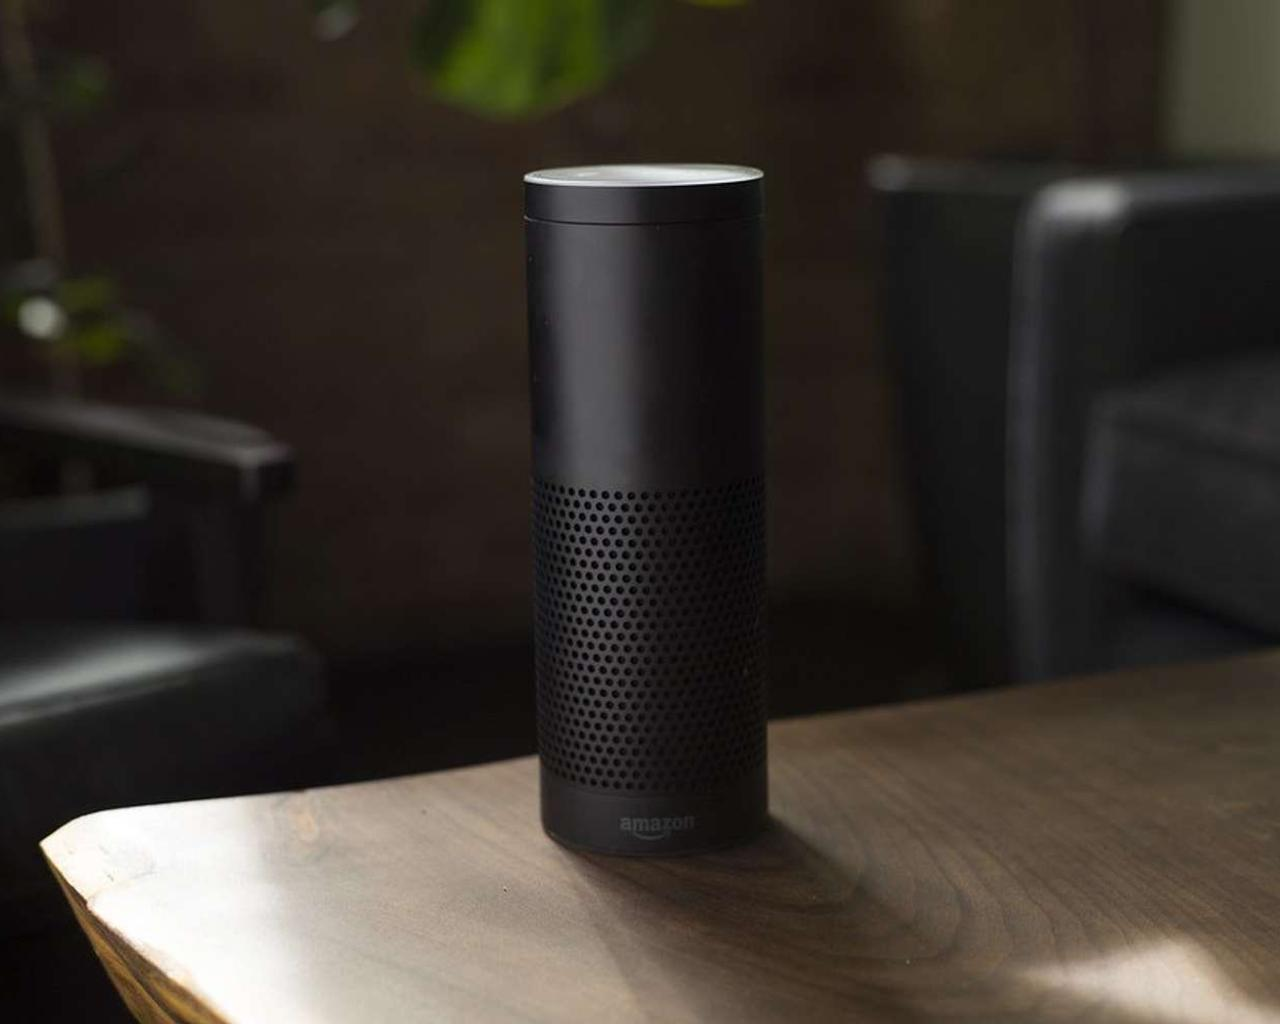 Amazon Alexa Devices Produced In Modern Day Sweat Factories—Should America Have Laws Against Products Of This Origin?